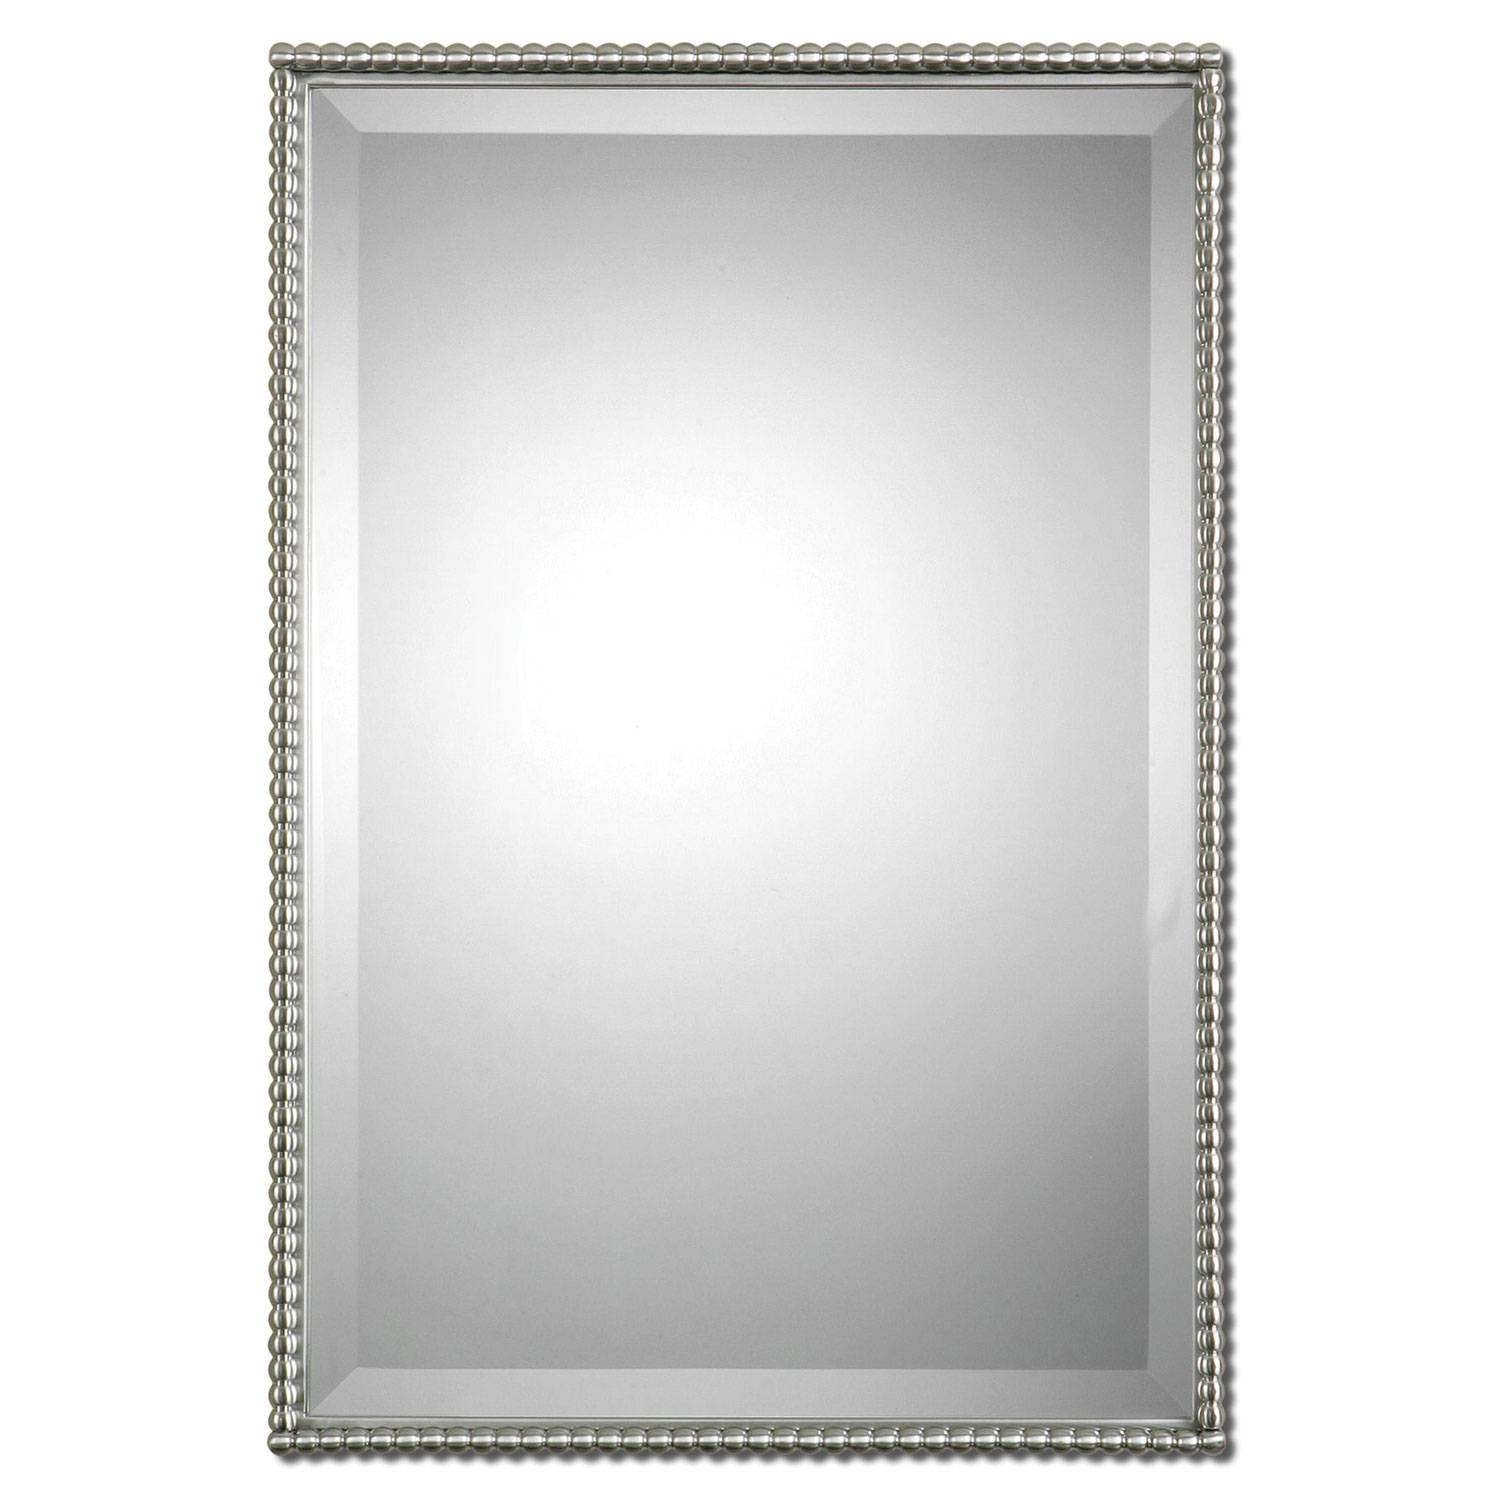 Uttermost Mirrors | Bellacor pertaining to White Metal Mirrors (Image 23 of 25)